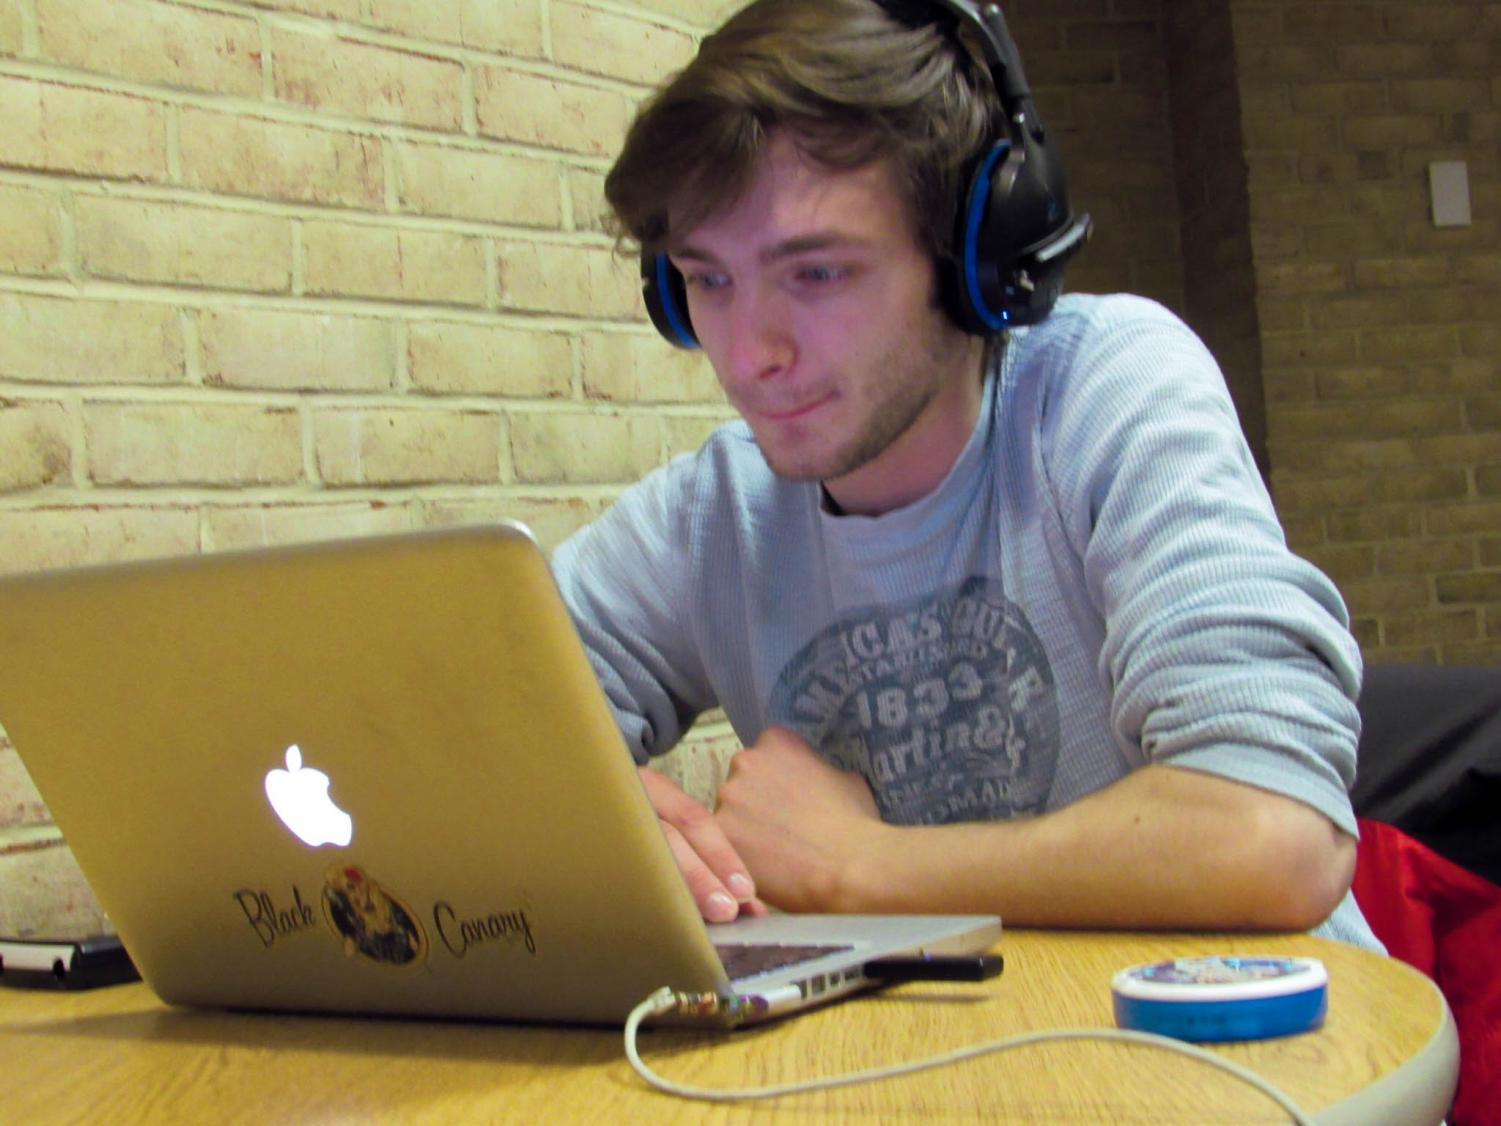 Students, like second-year physics student Kenneth Arnold, participated in a student survey on campus.